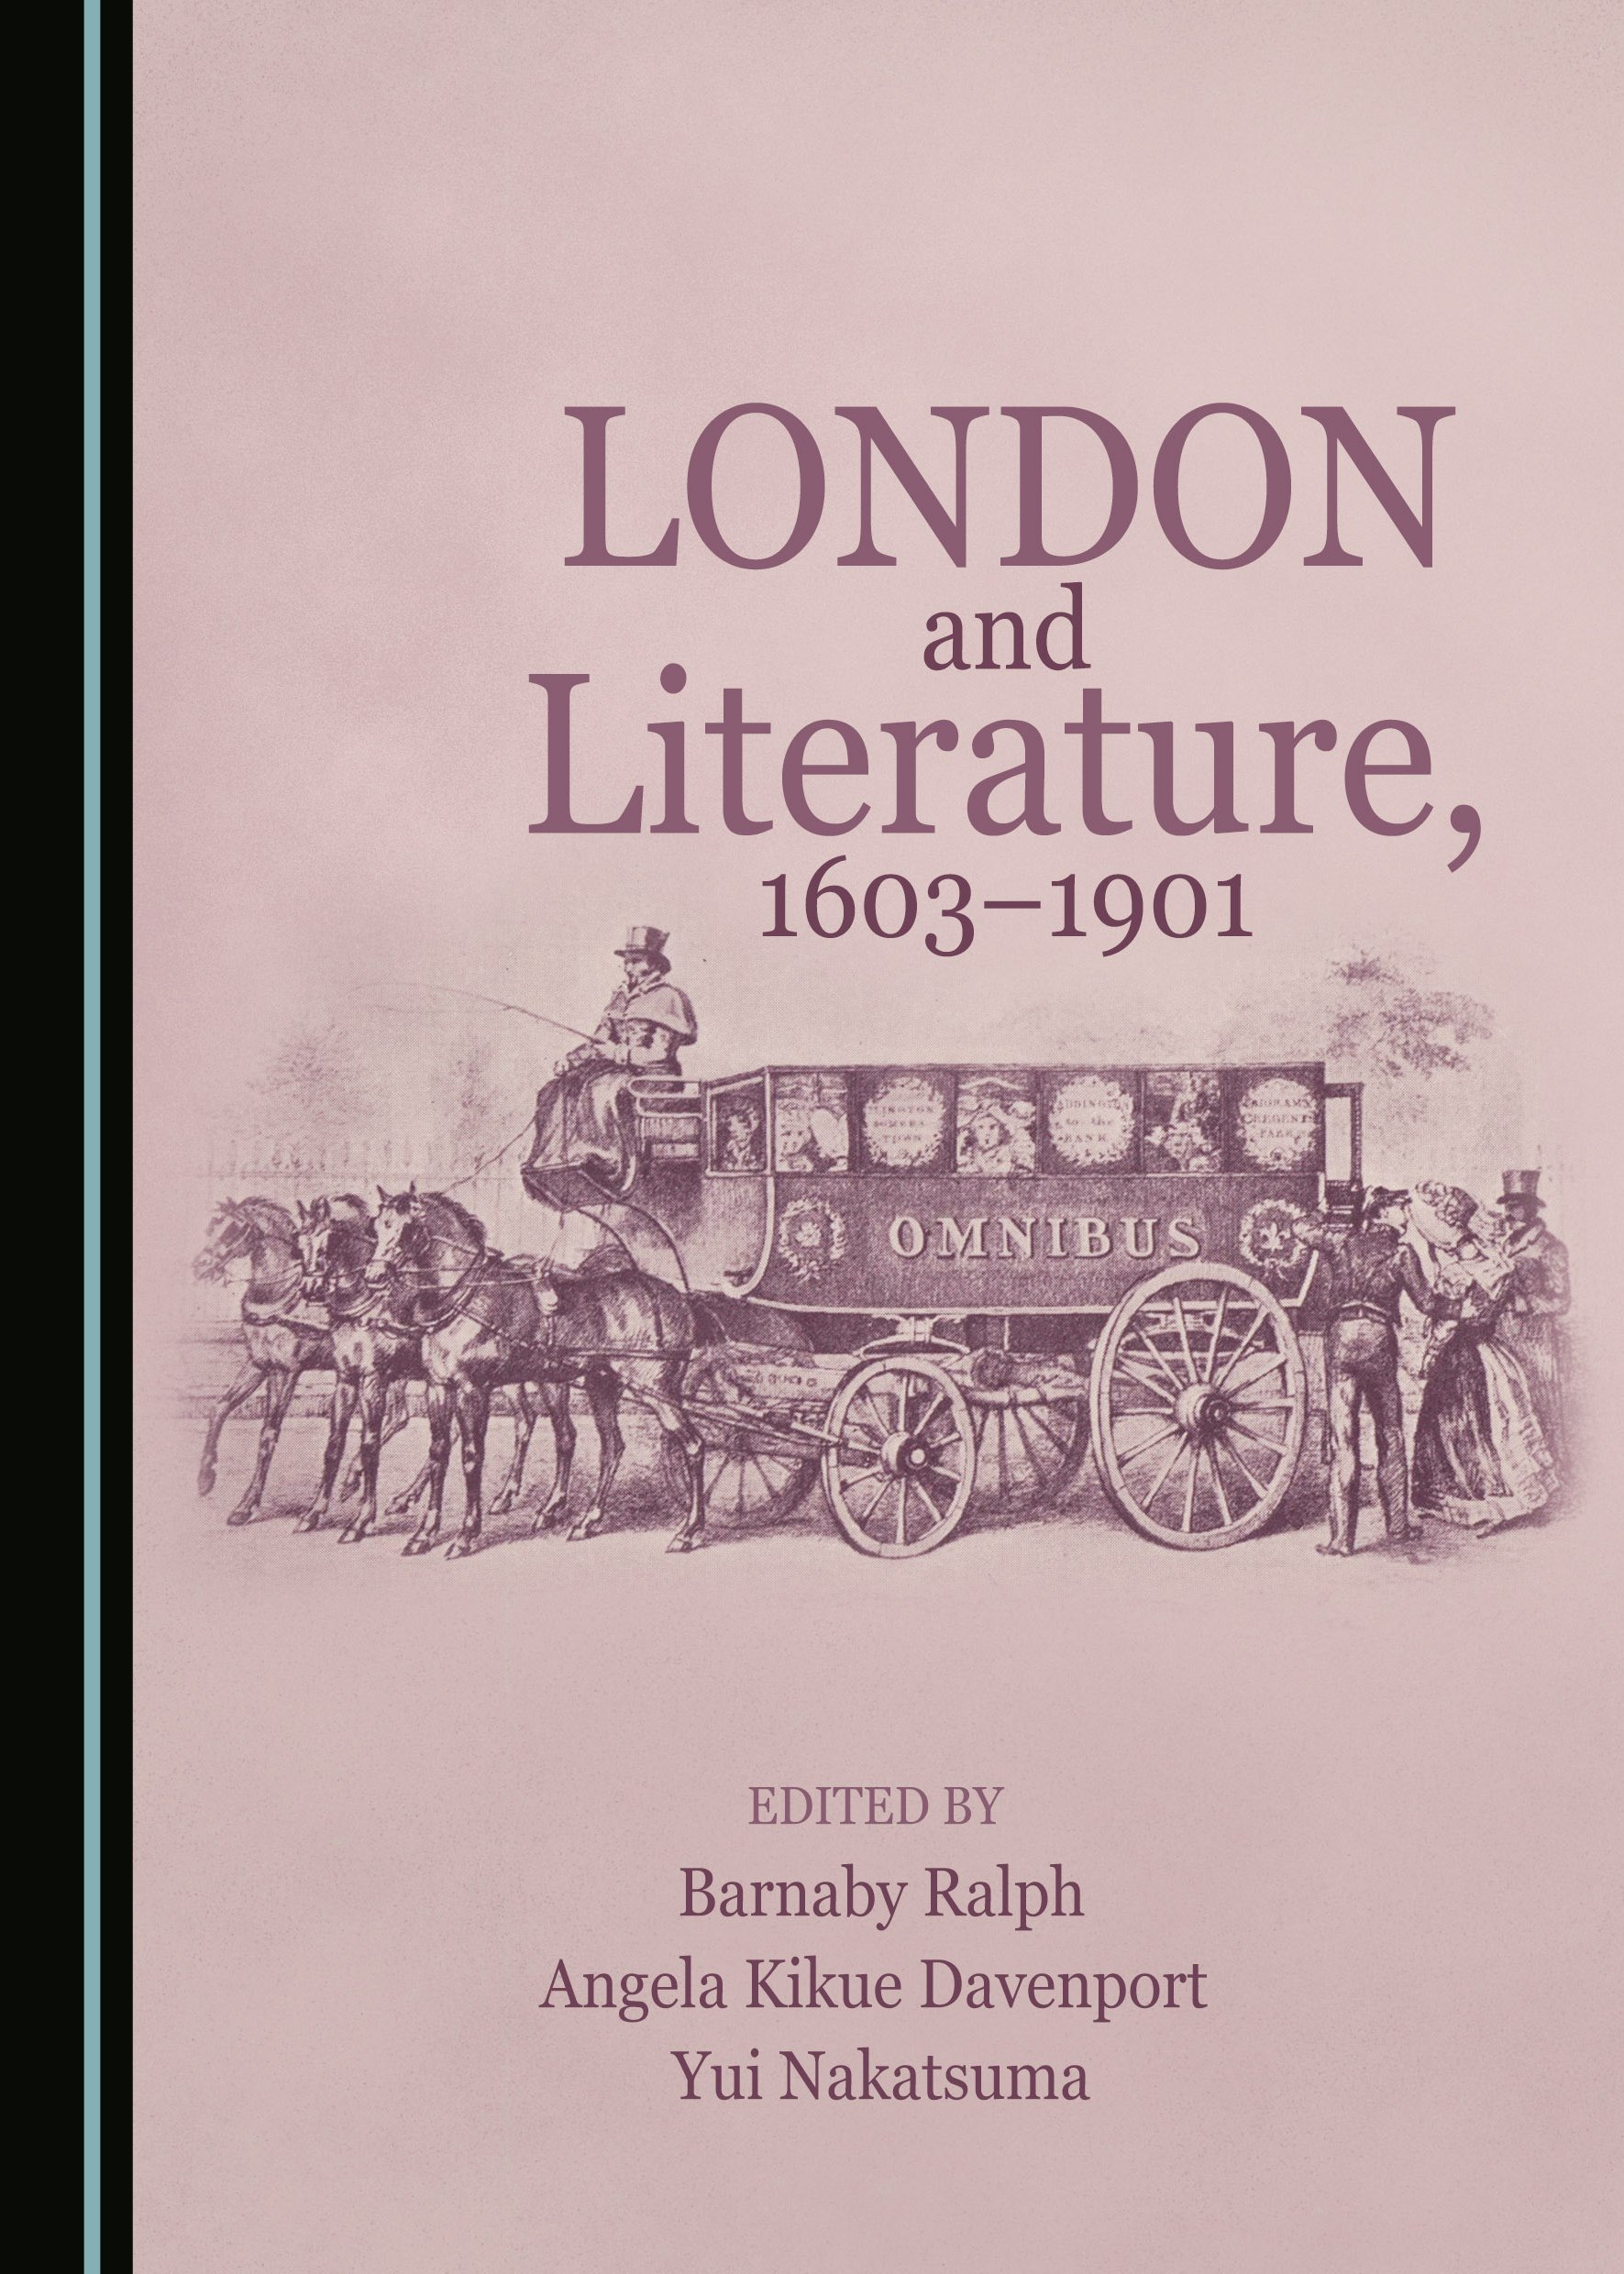 London and Literature, 1603-1901